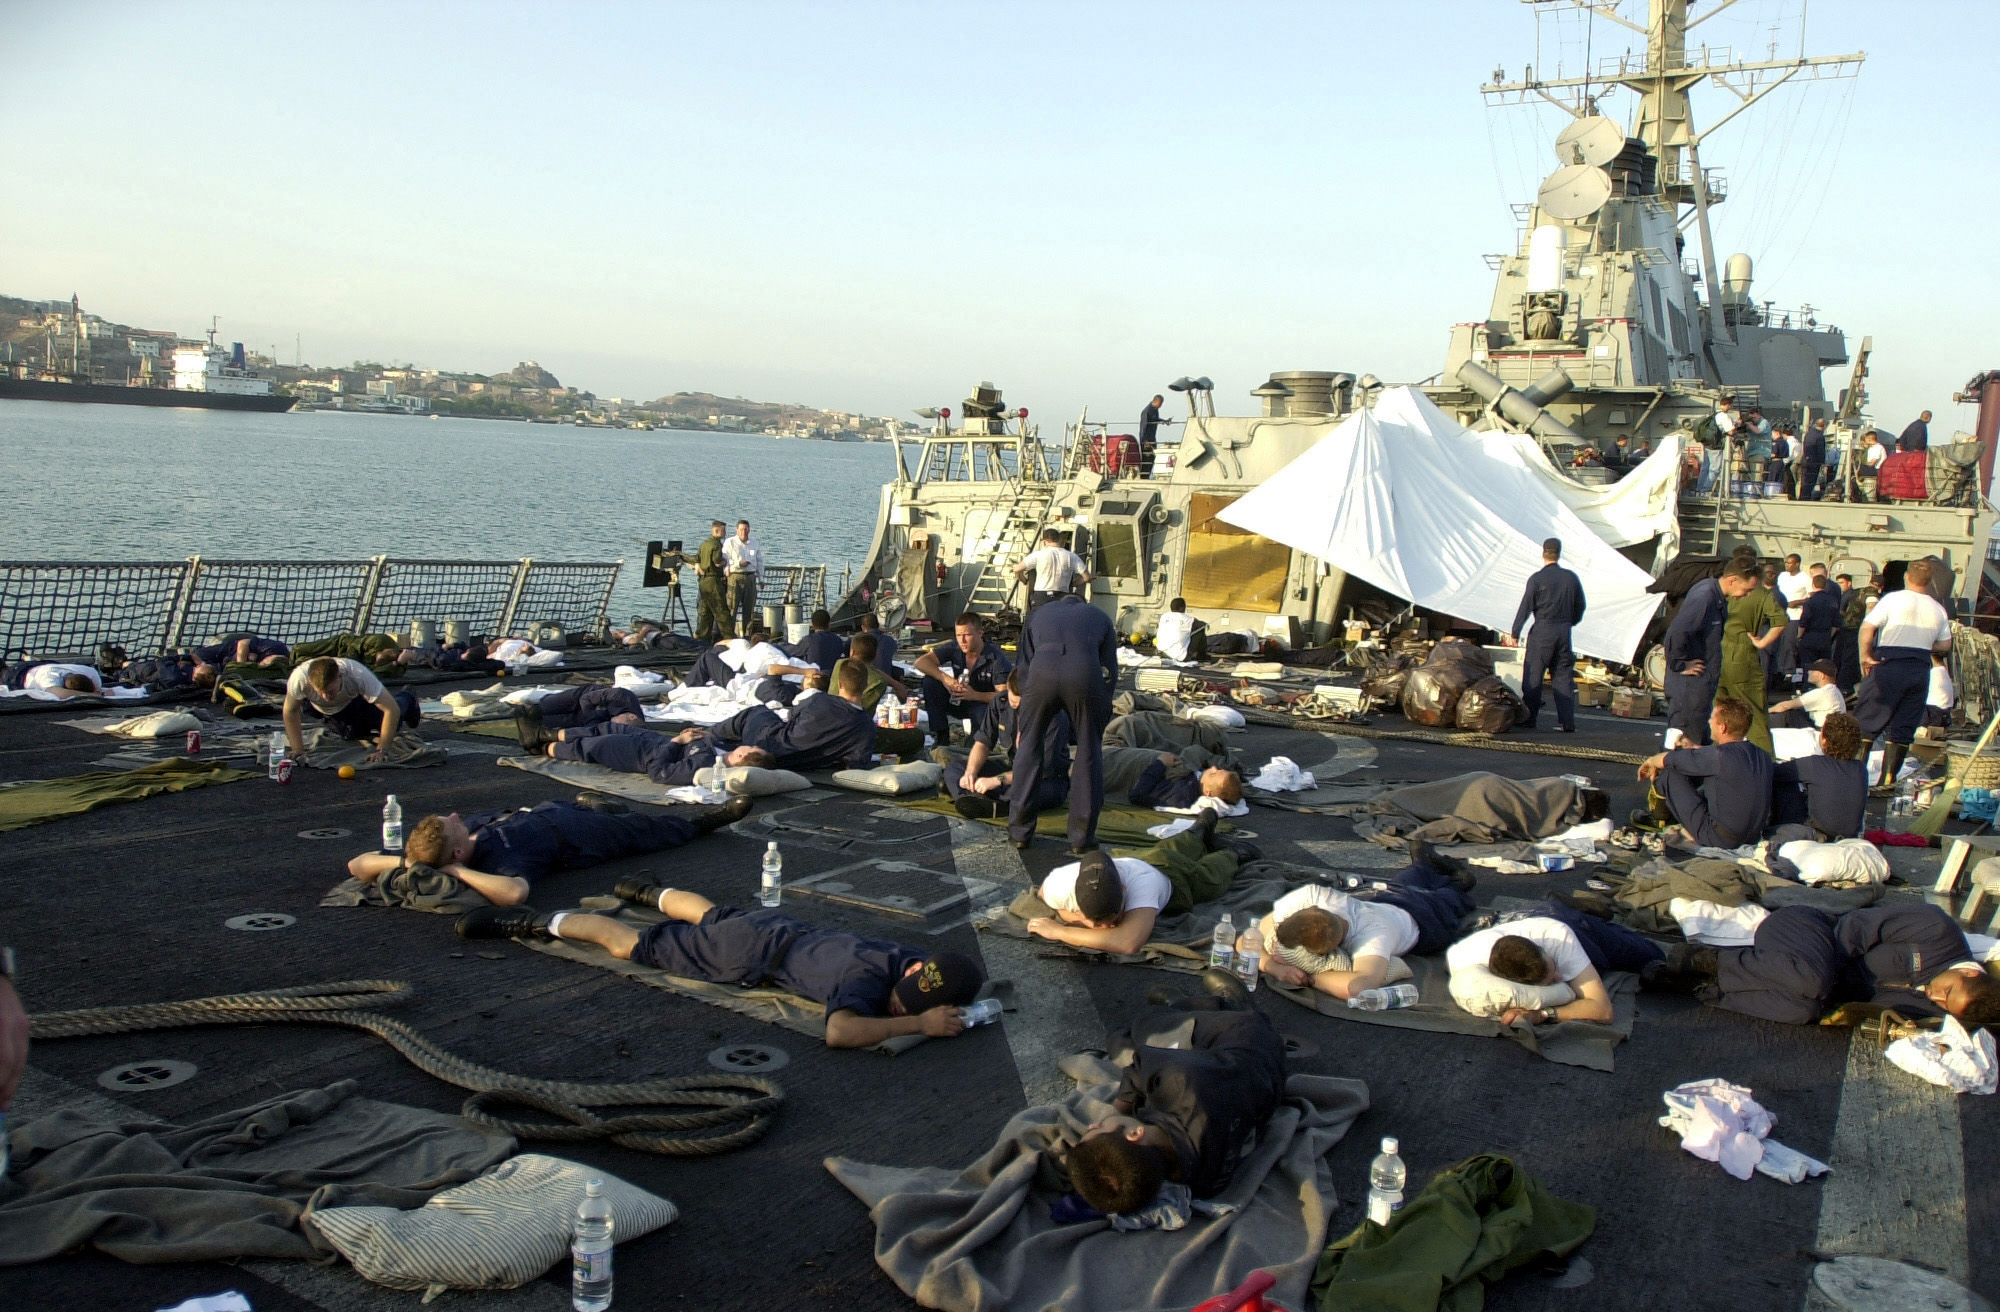 USS Cole sailors rest October 13, 2000 on the helicopter deck in Yemen following the October 12, 2000 terrorist bombing attack on their ship in the port of Aden, Yemen. (U.S. Navy Photo by Jim Watson)